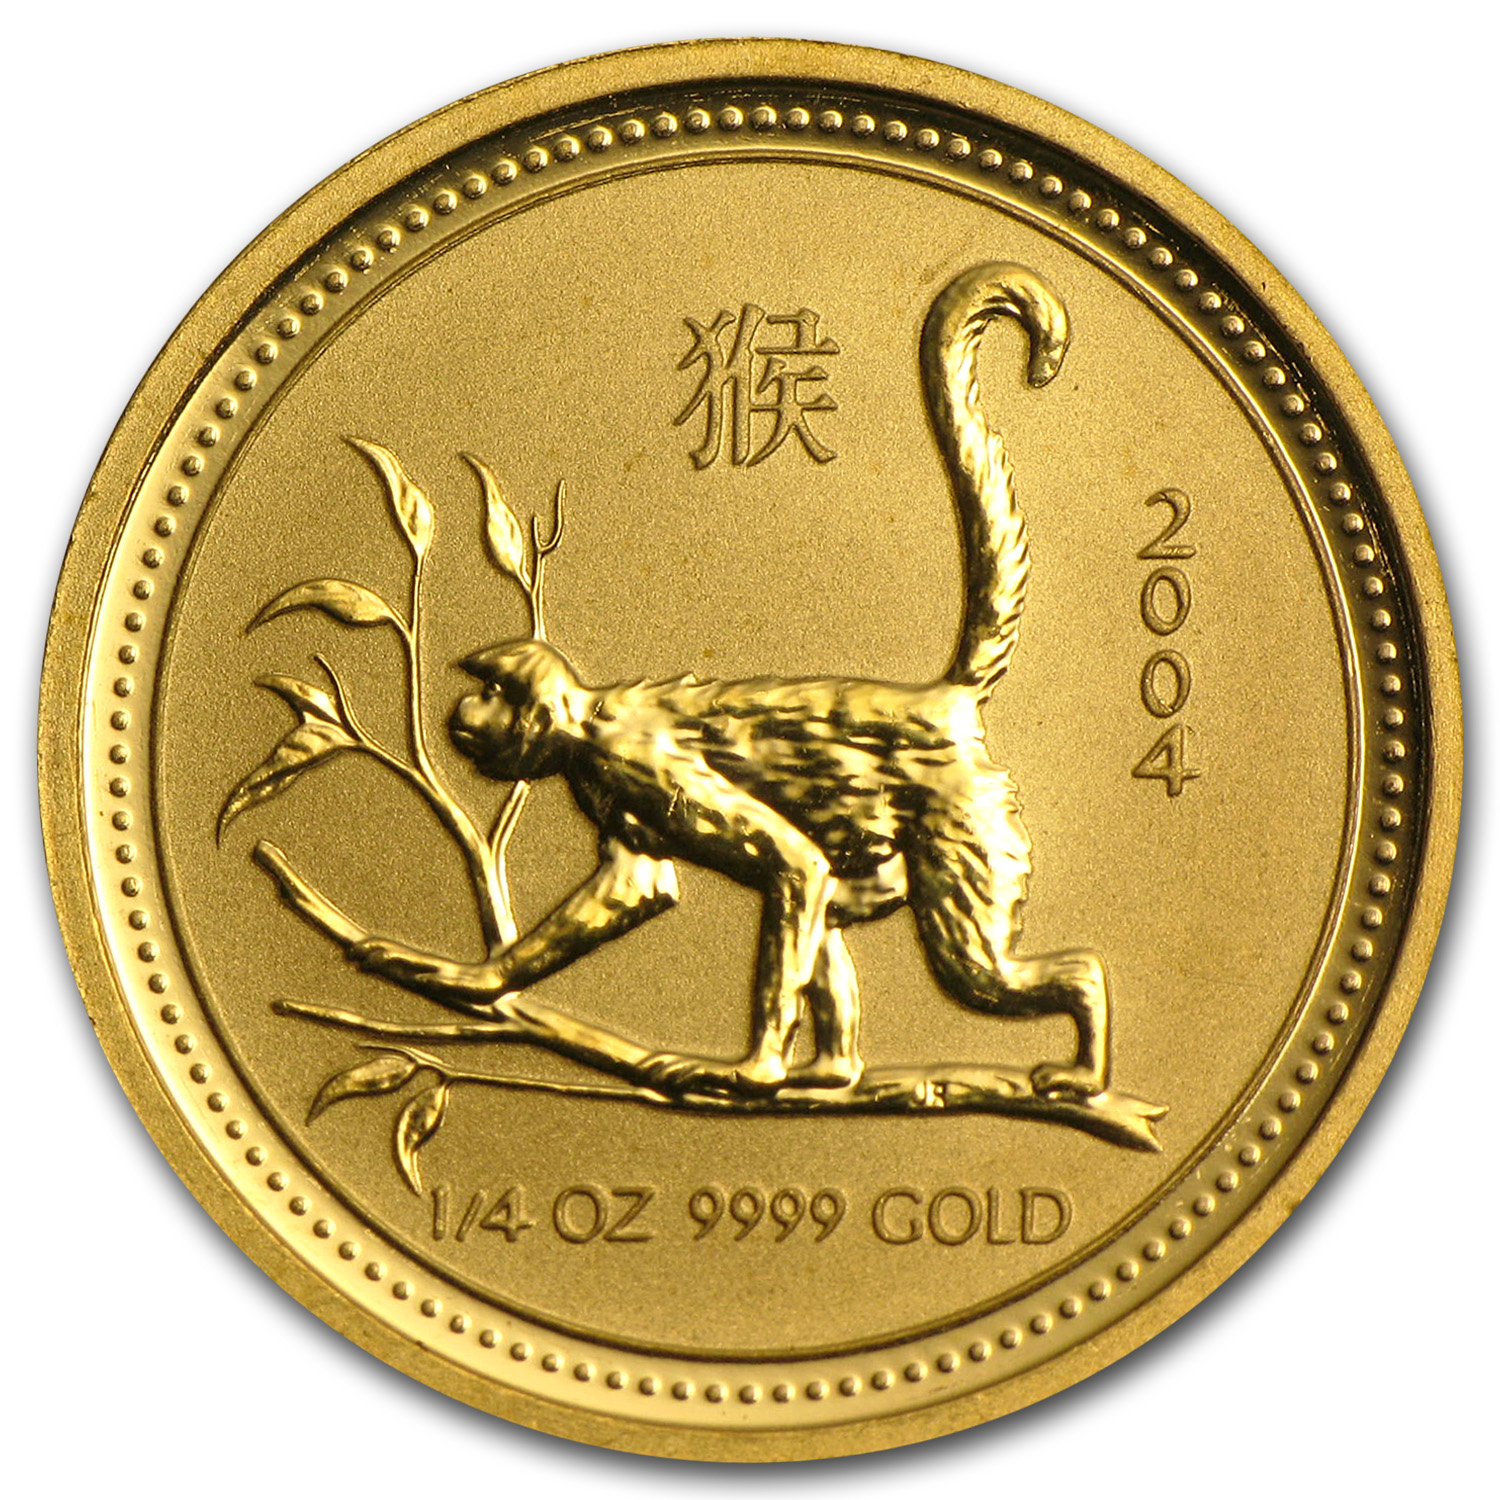 2004 1/4 oz Gold Year of the Monkey Lunar Coin SI (Abrasions)